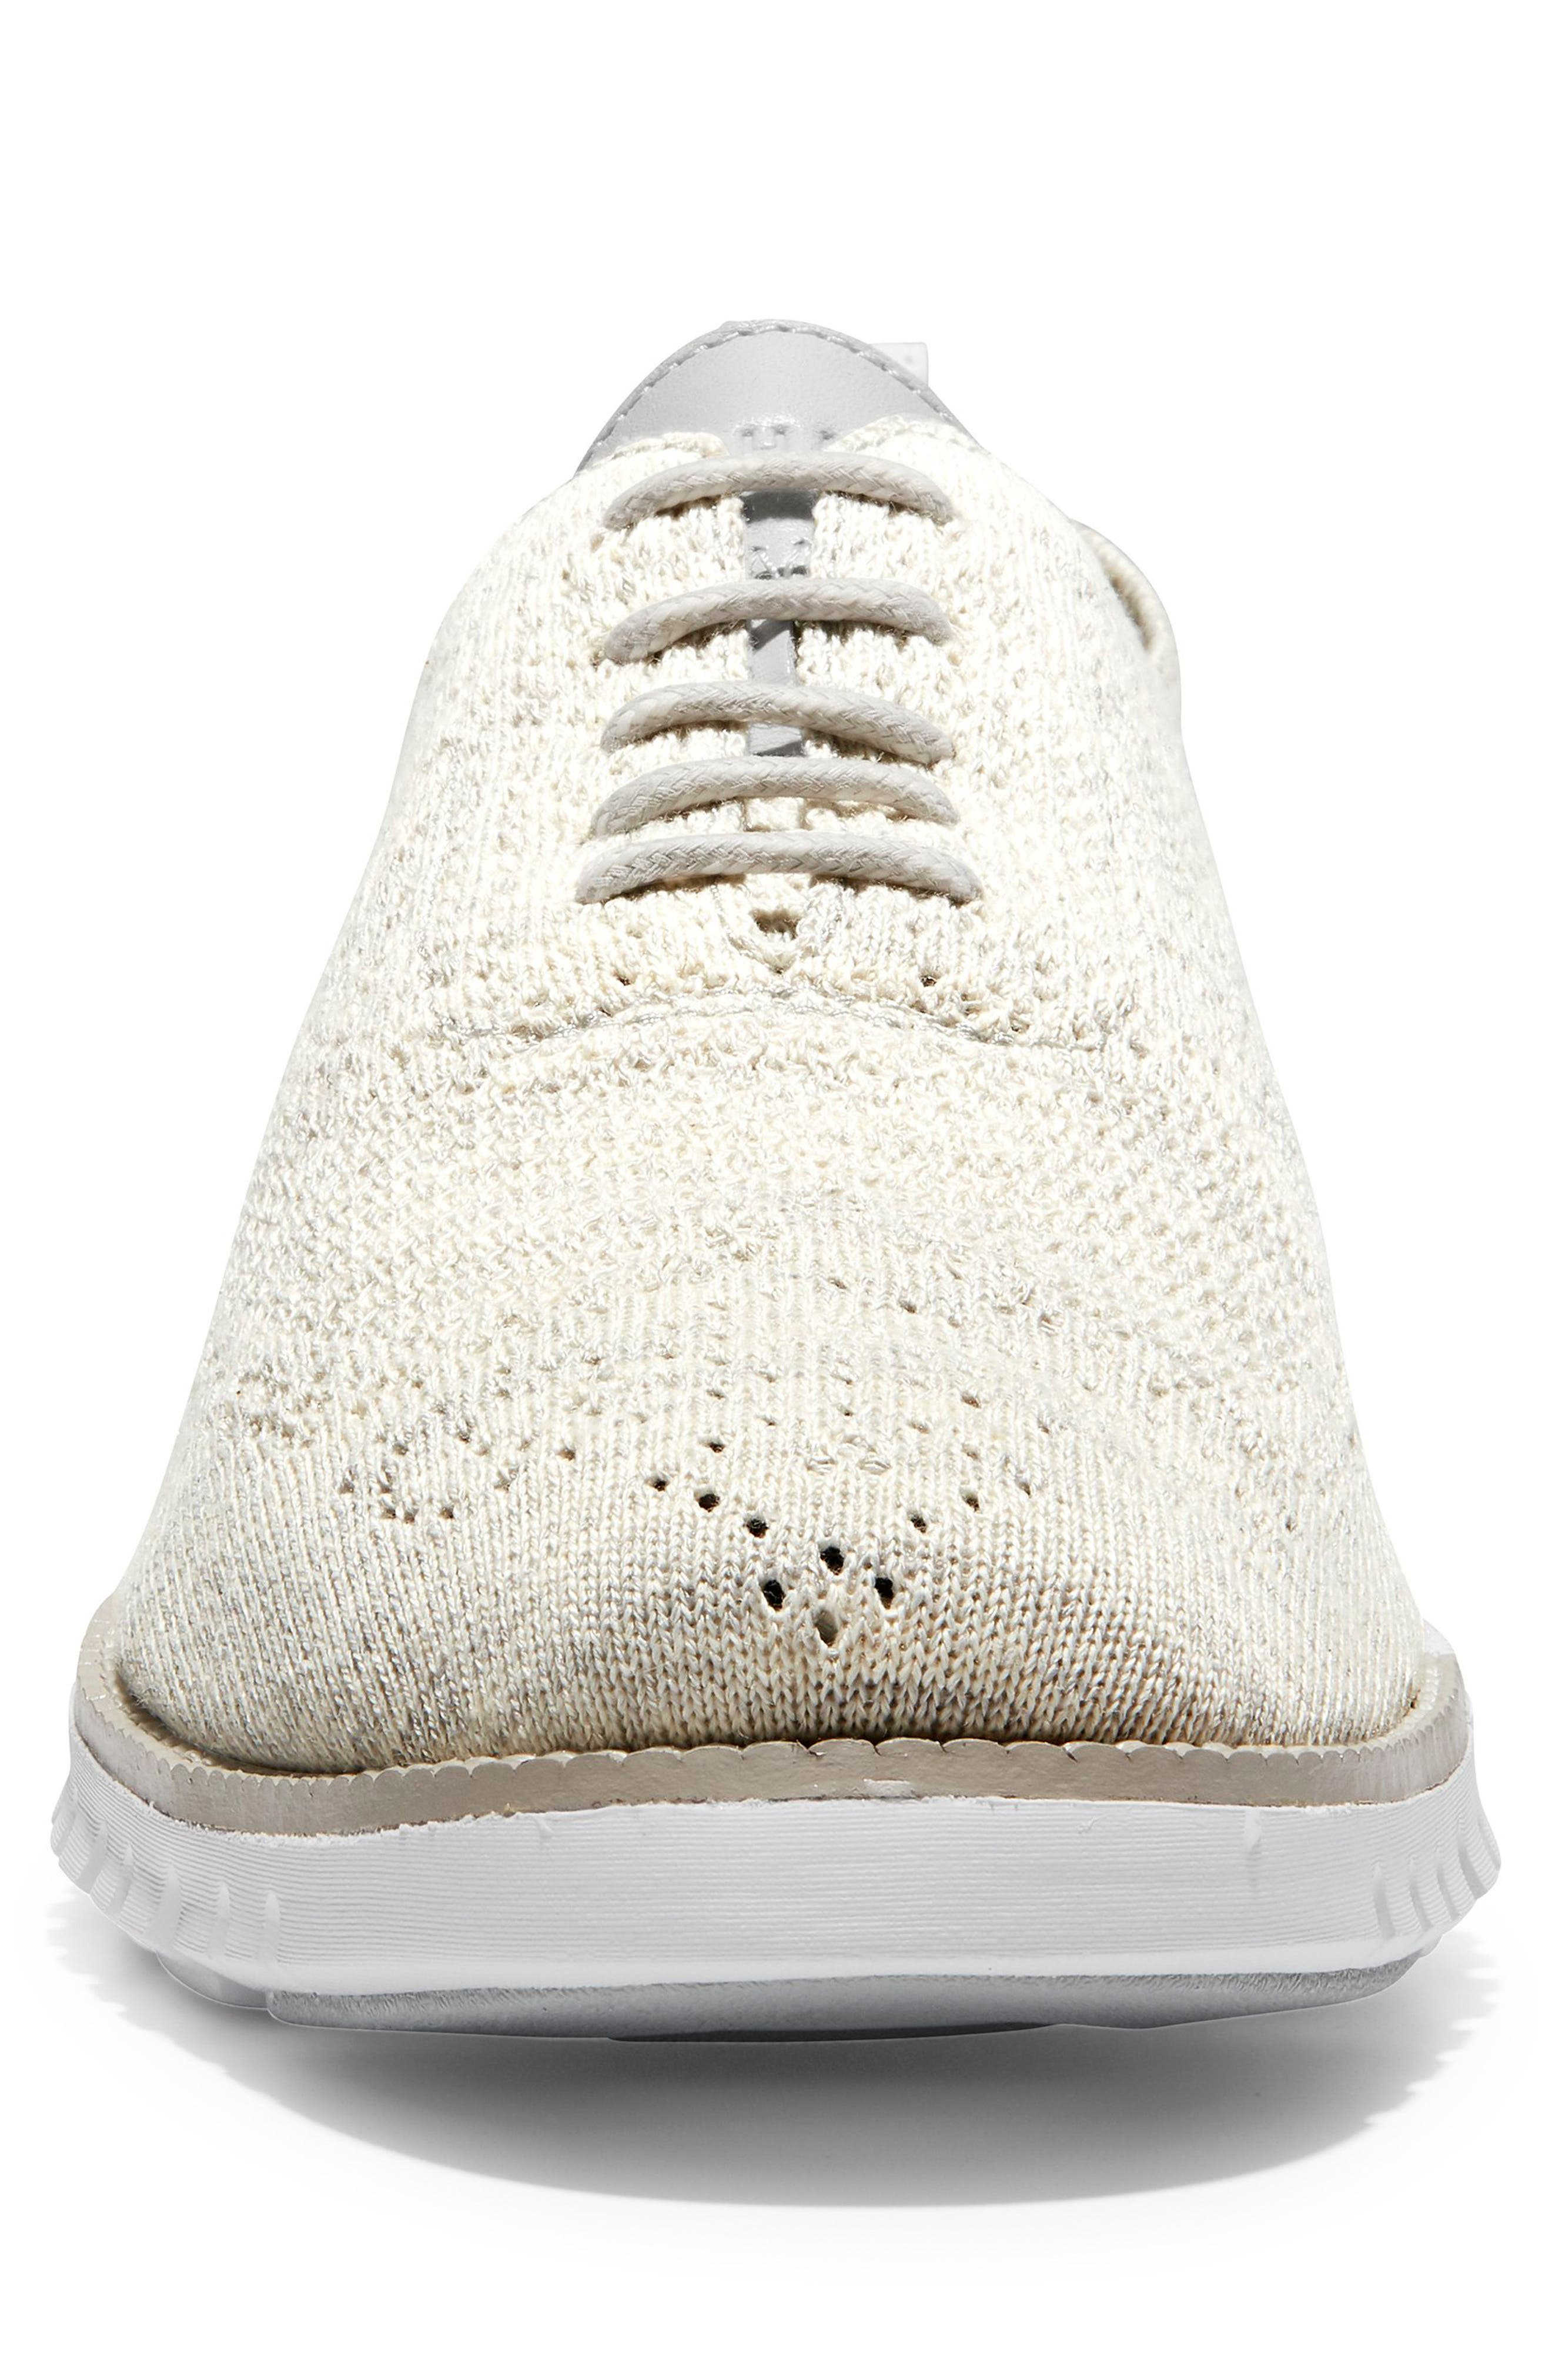 ZeroGrand Stitchlite Woven Wool Wingtip,                             Alternate thumbnail 4, color,                             HARBOR MIST KNIT